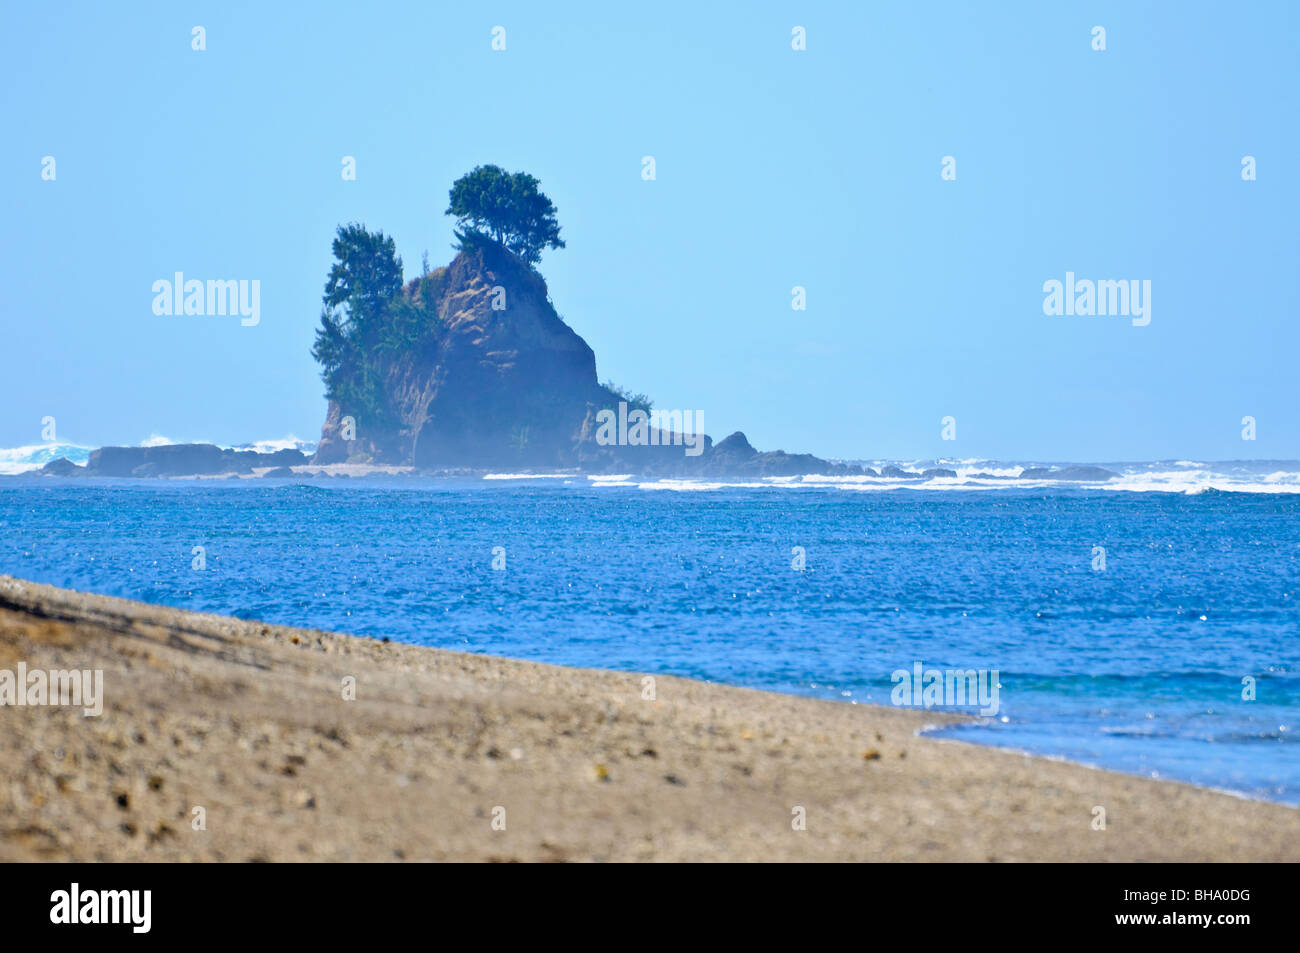 Rock formation offshore from an undiscovered tropical beach, with ocean waves - Stock Image